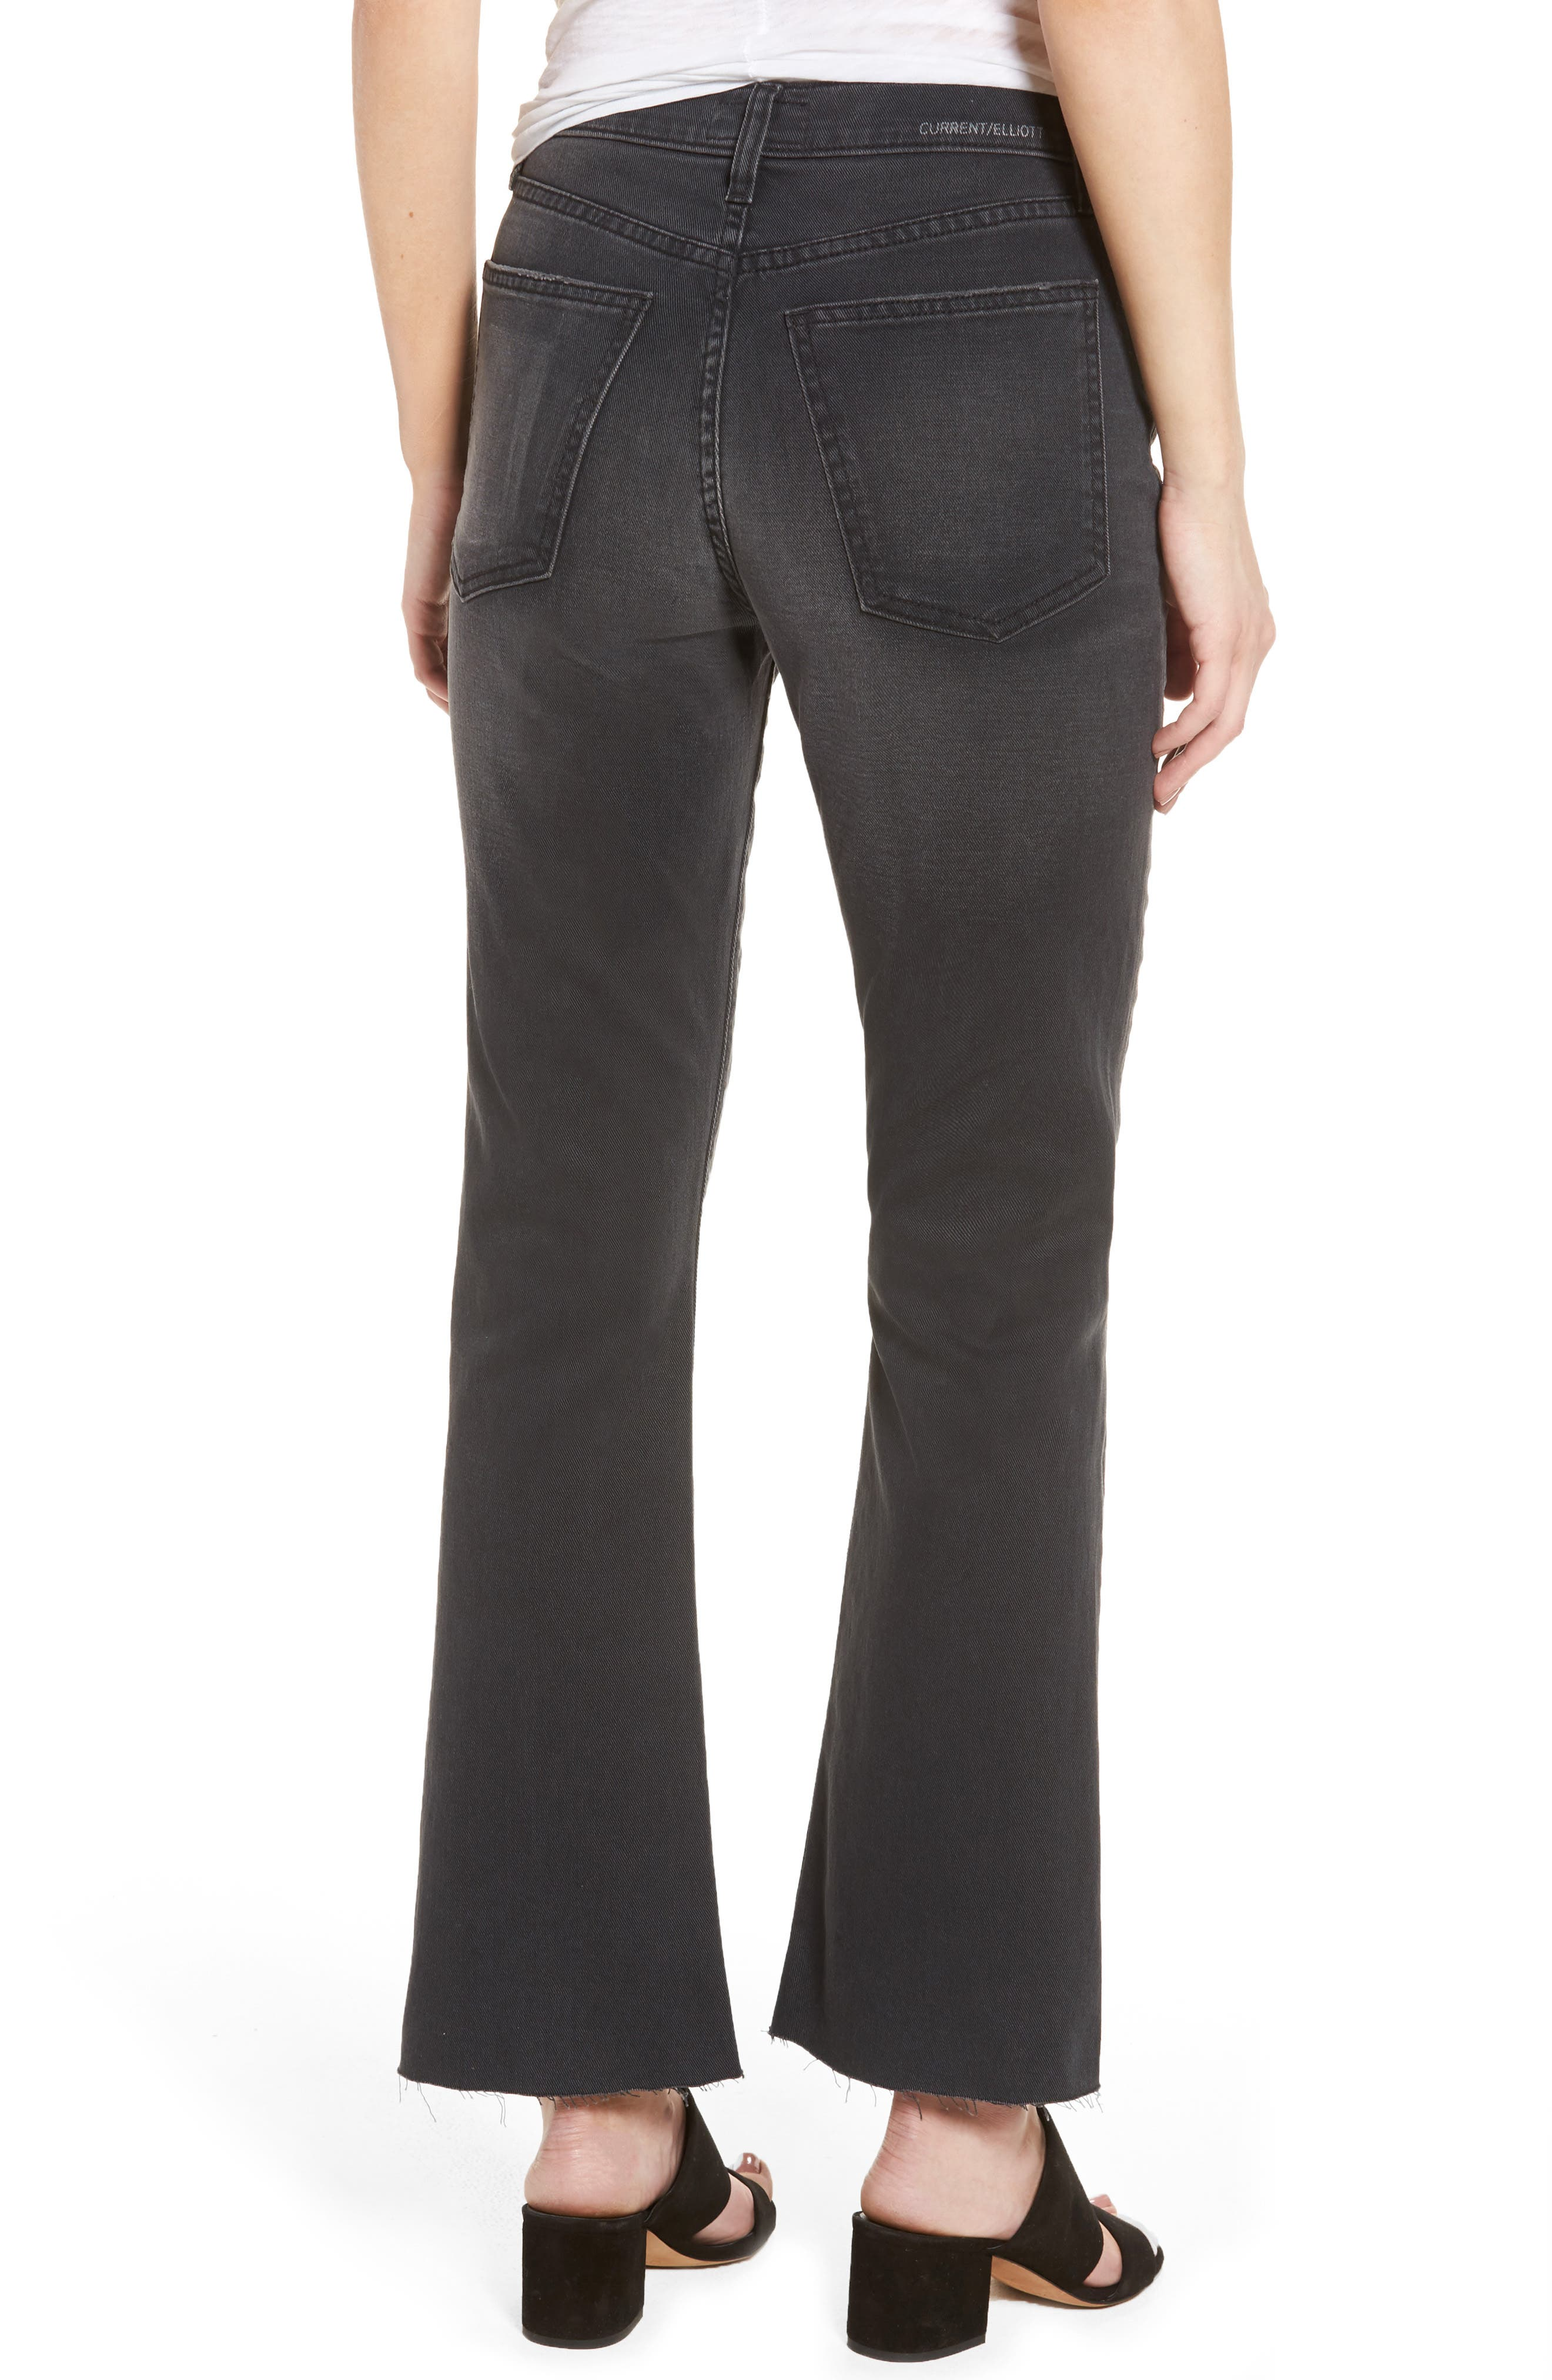 CURRENT/ELLIOTT, The Kick High Waist Crop Flare Jeans, Alternate thumbnail 2, color, 017